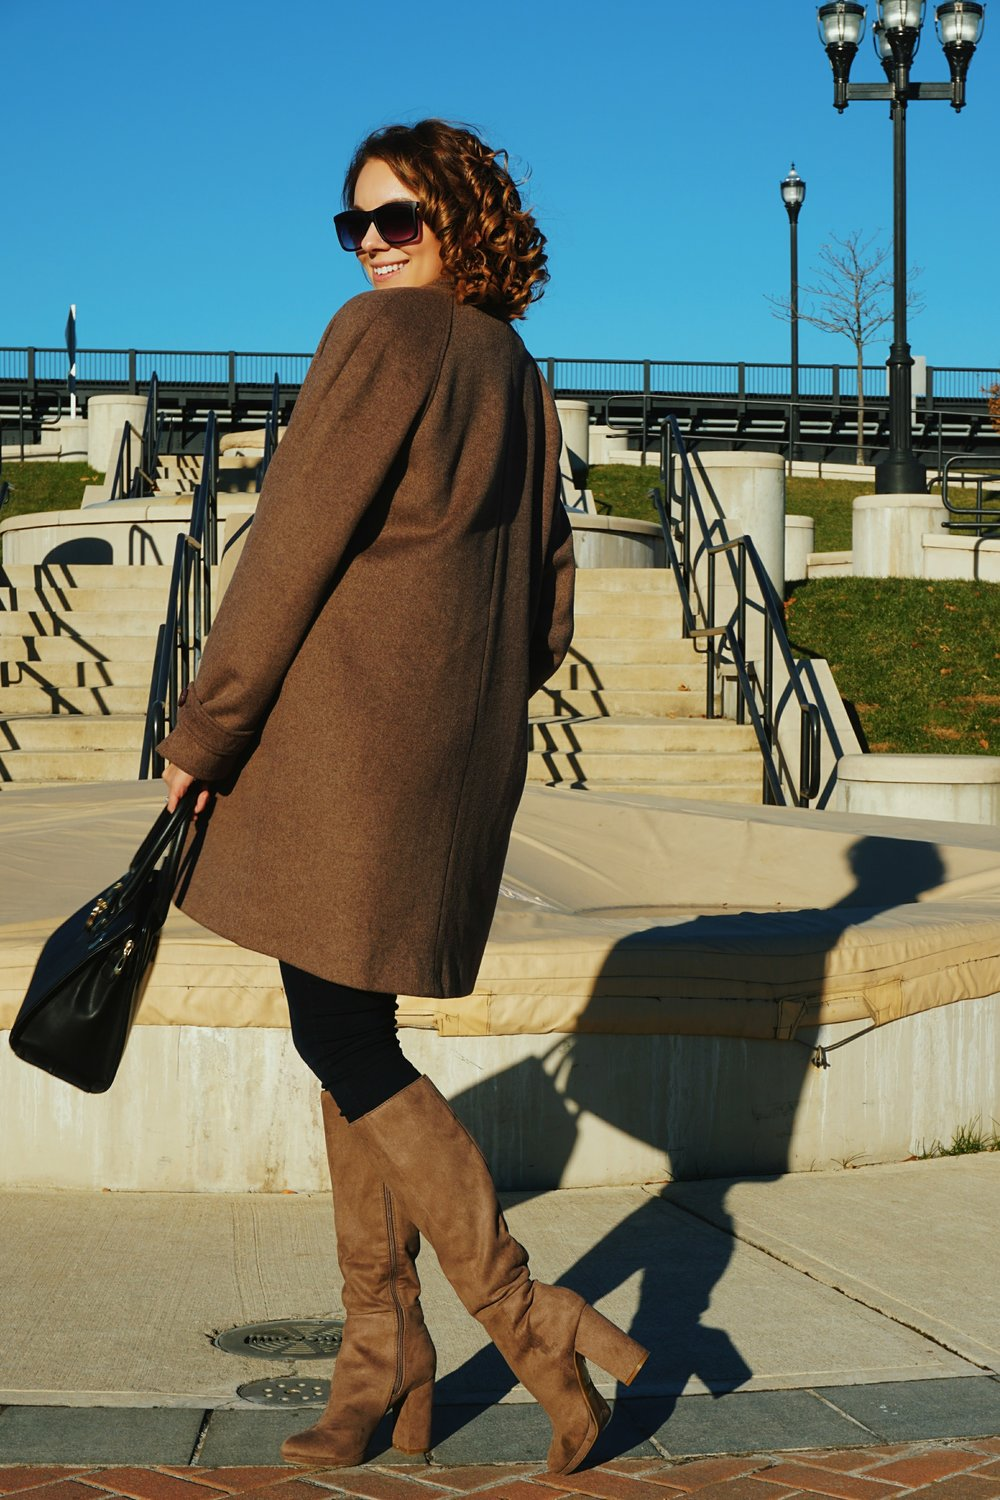 A blogger wearing an autumn outfit: brown coat, brown boots, and a black bag.